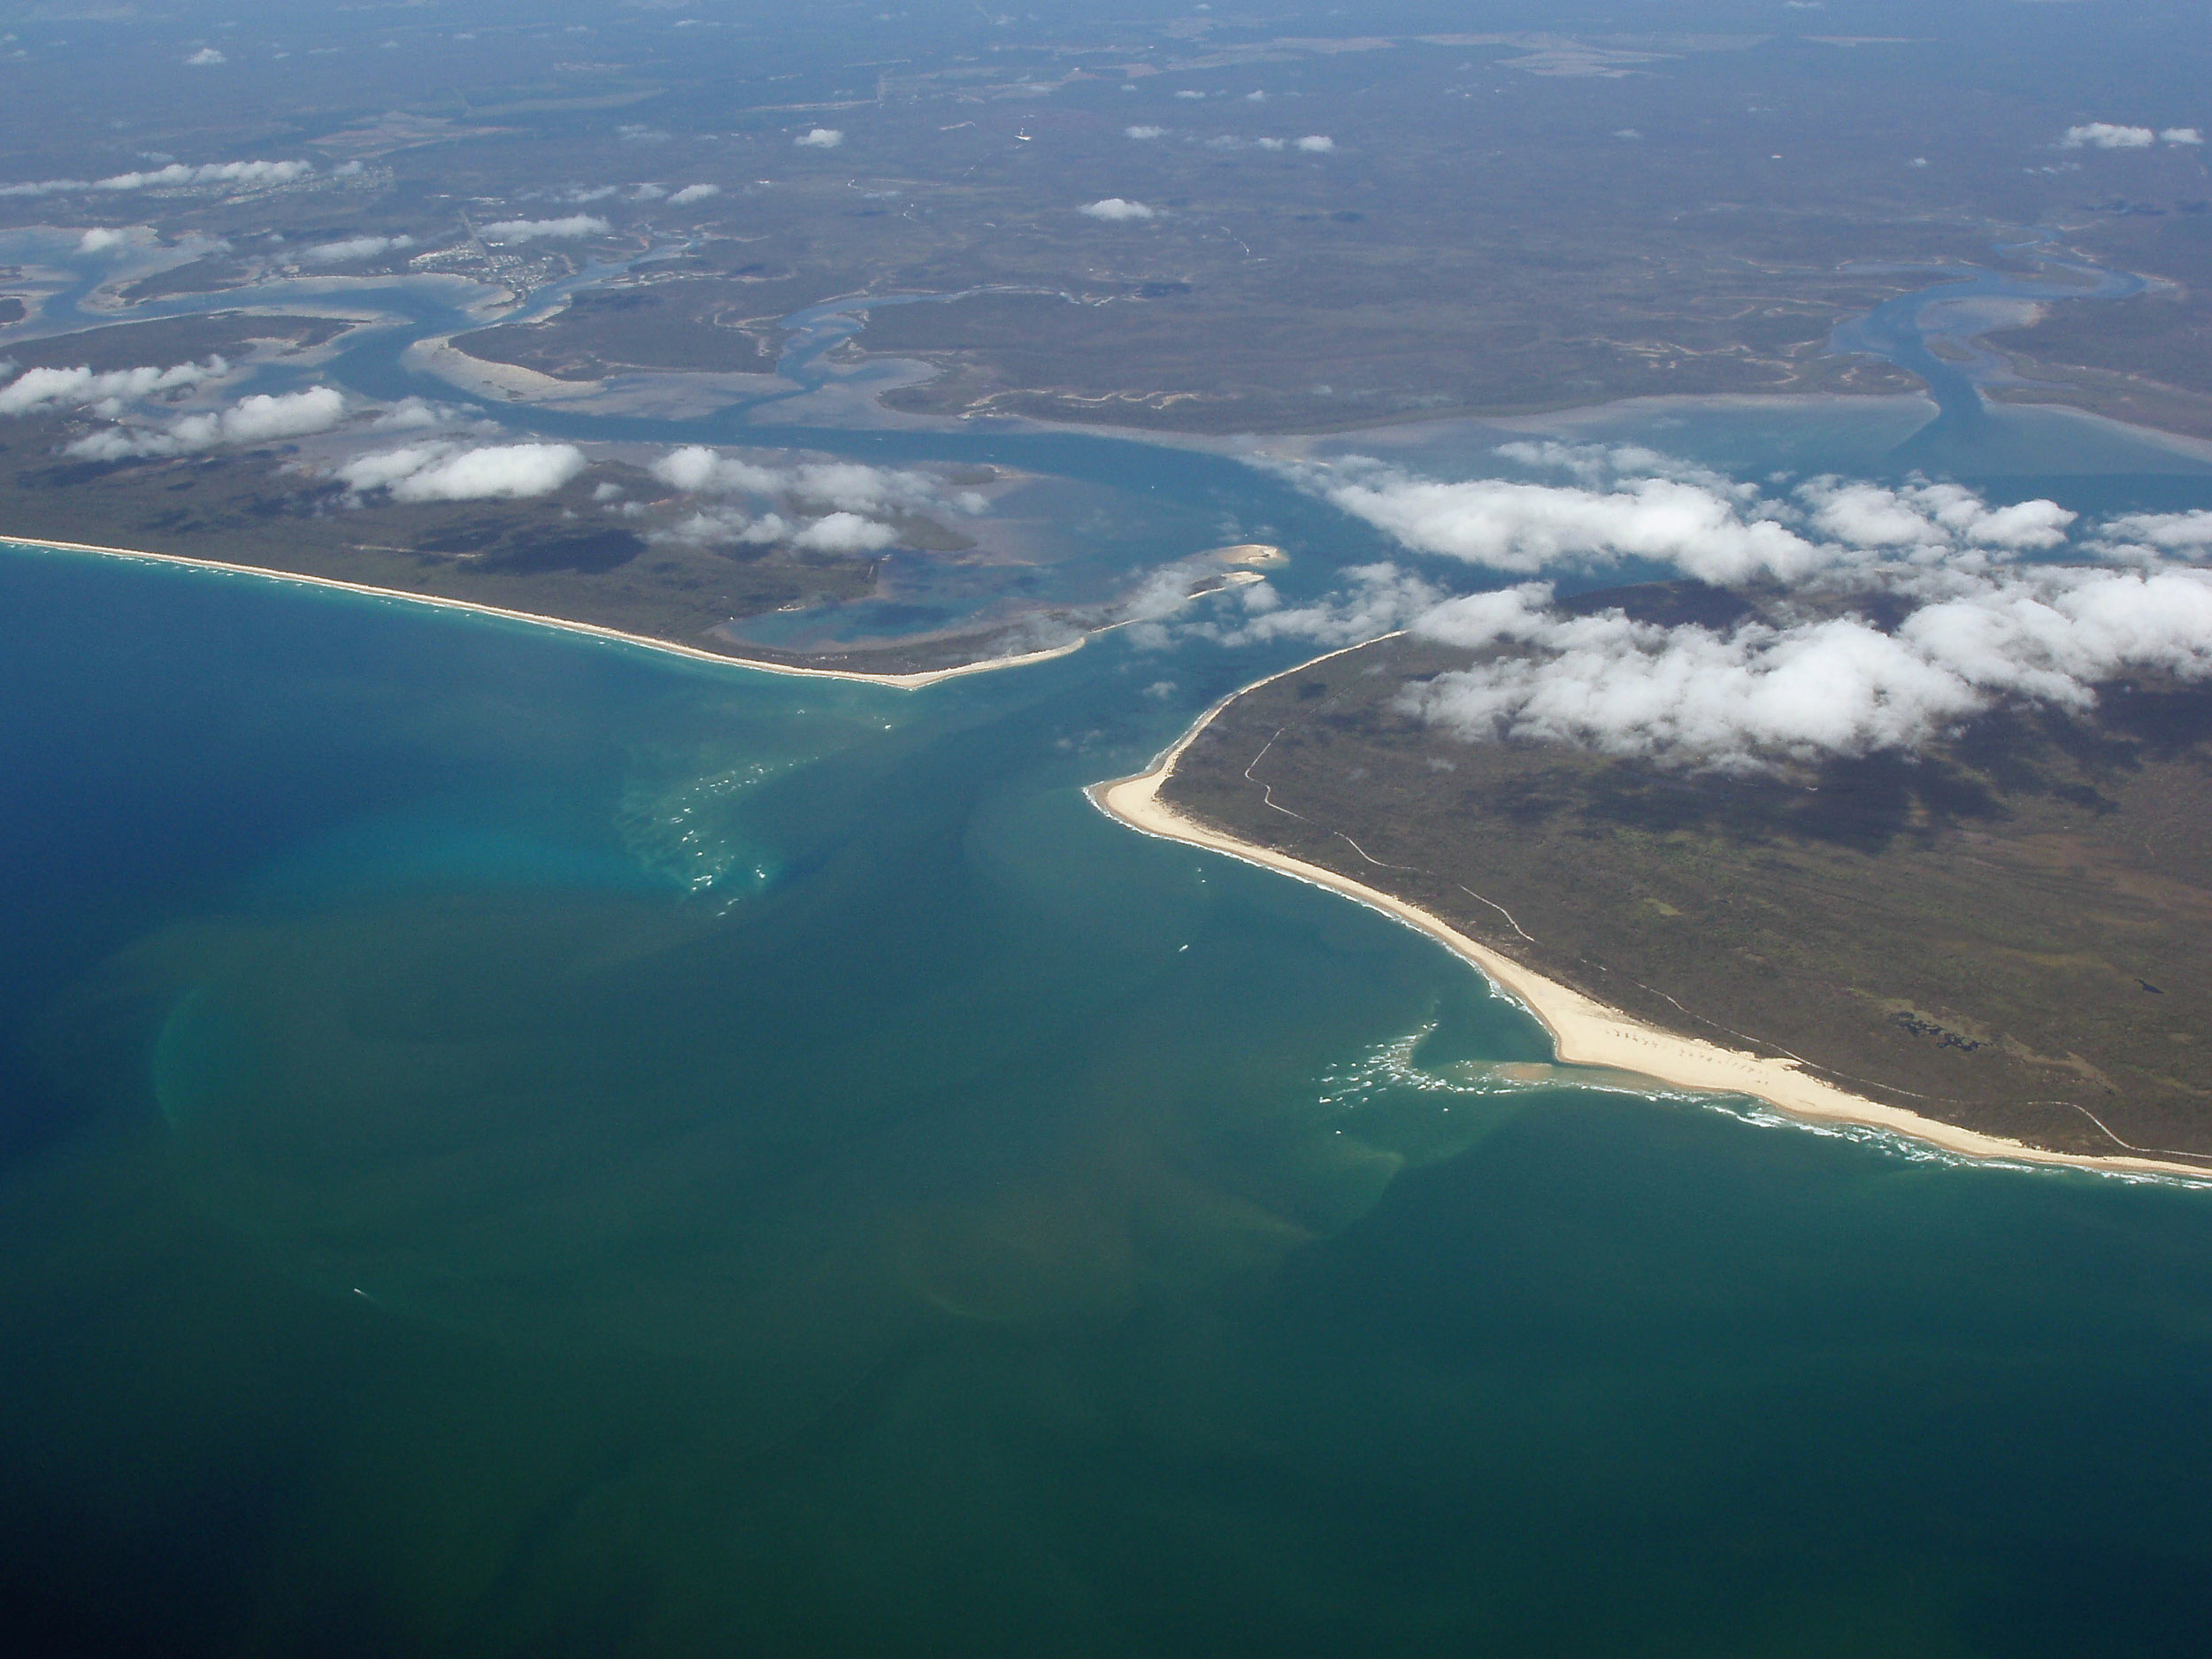 tidal inlet at great sandy straight, queensland